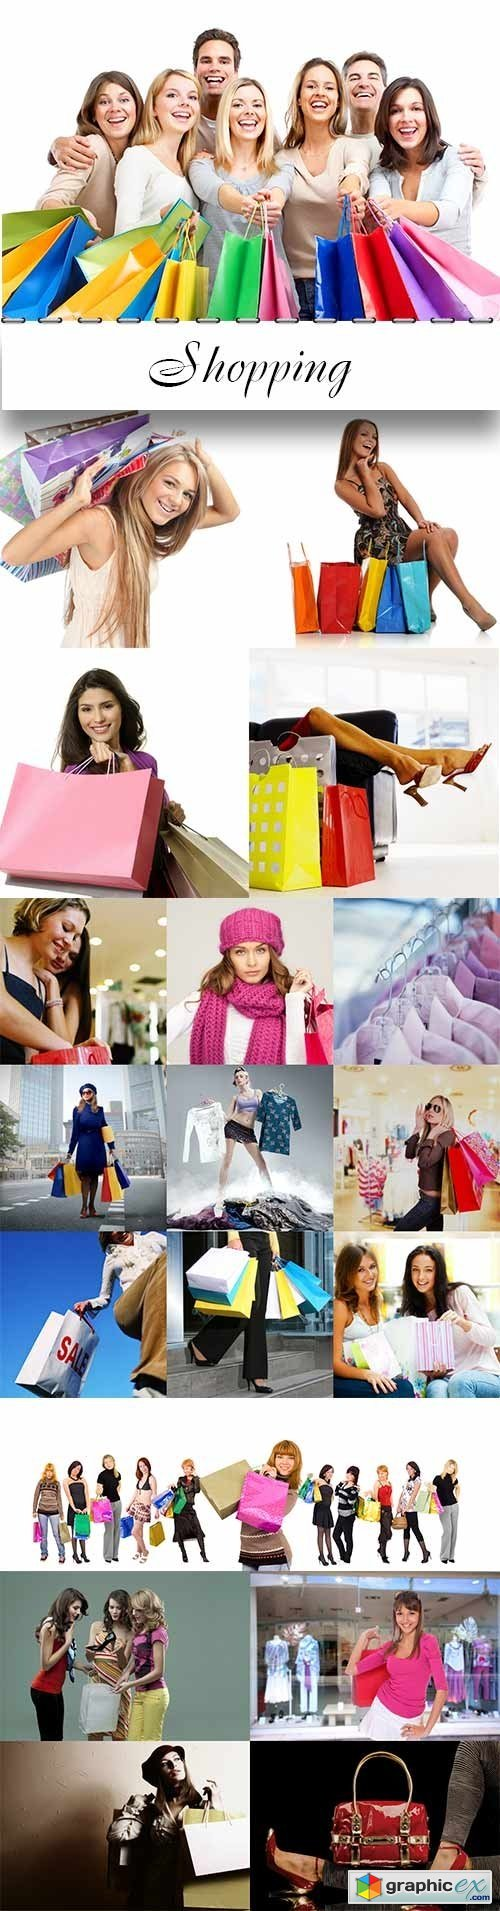 Shopping raster graphics